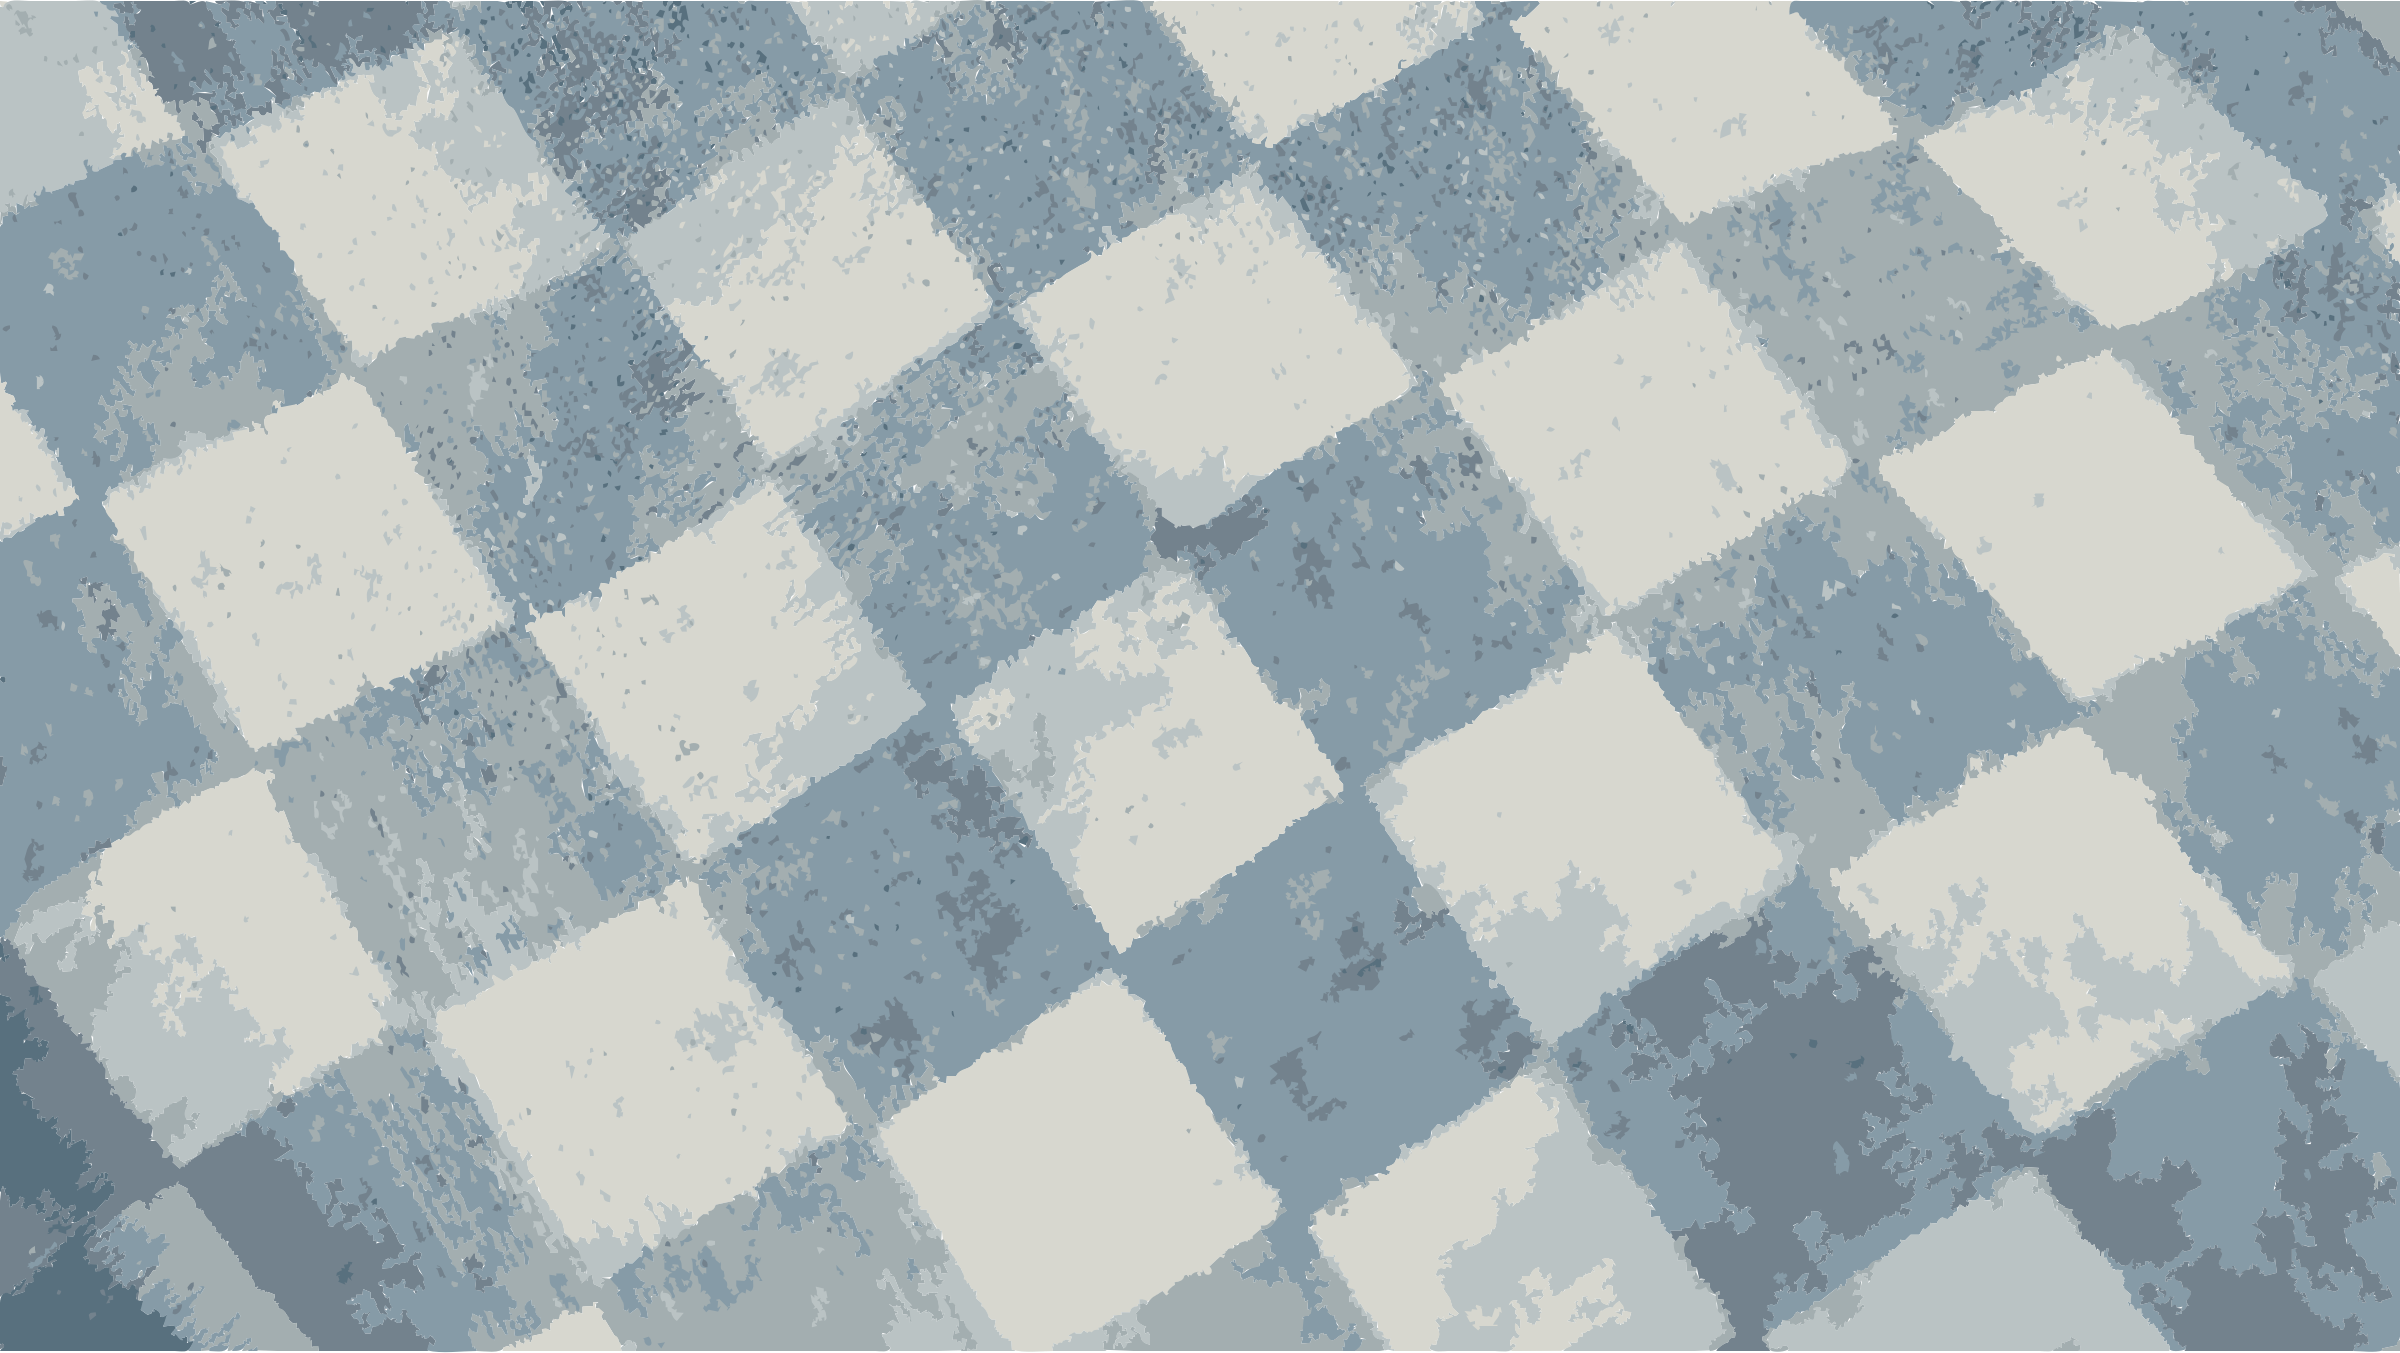 Flat checker pattern in blue and white by peteippel